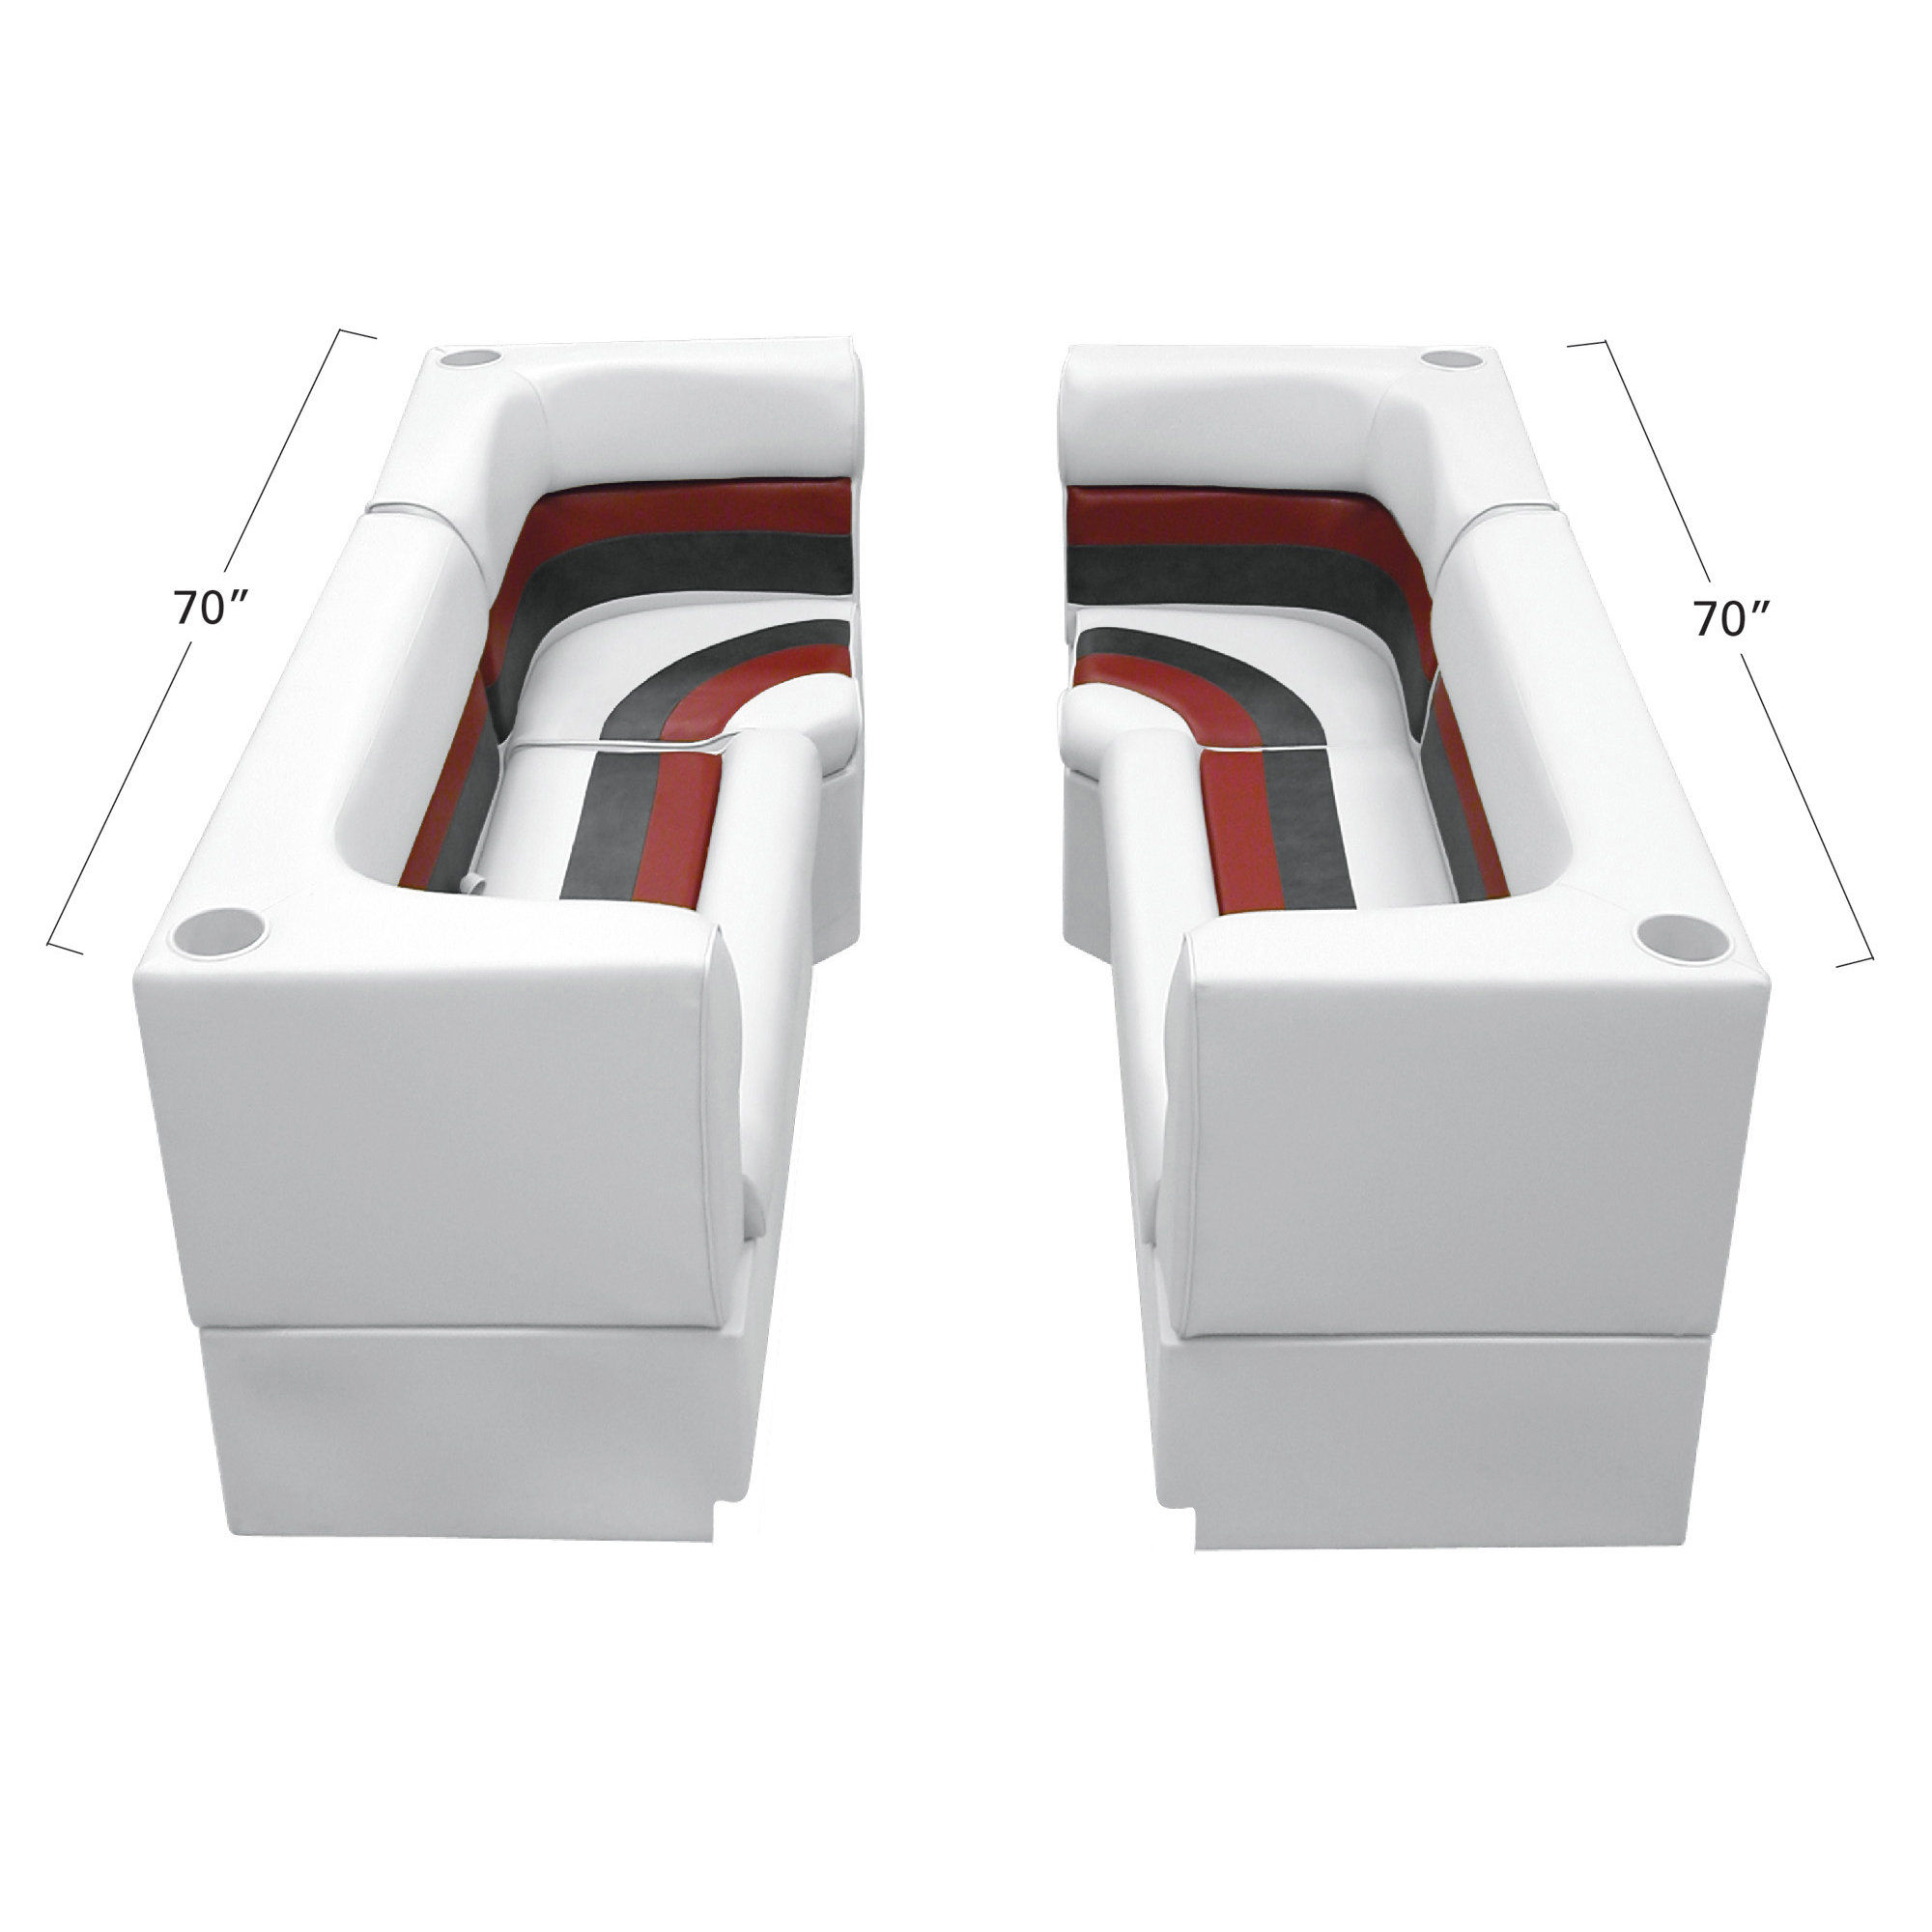 Deluxe Pontoon Furniture w/Toe Kick Base - Party Pit Package, White/Red/Charcoal